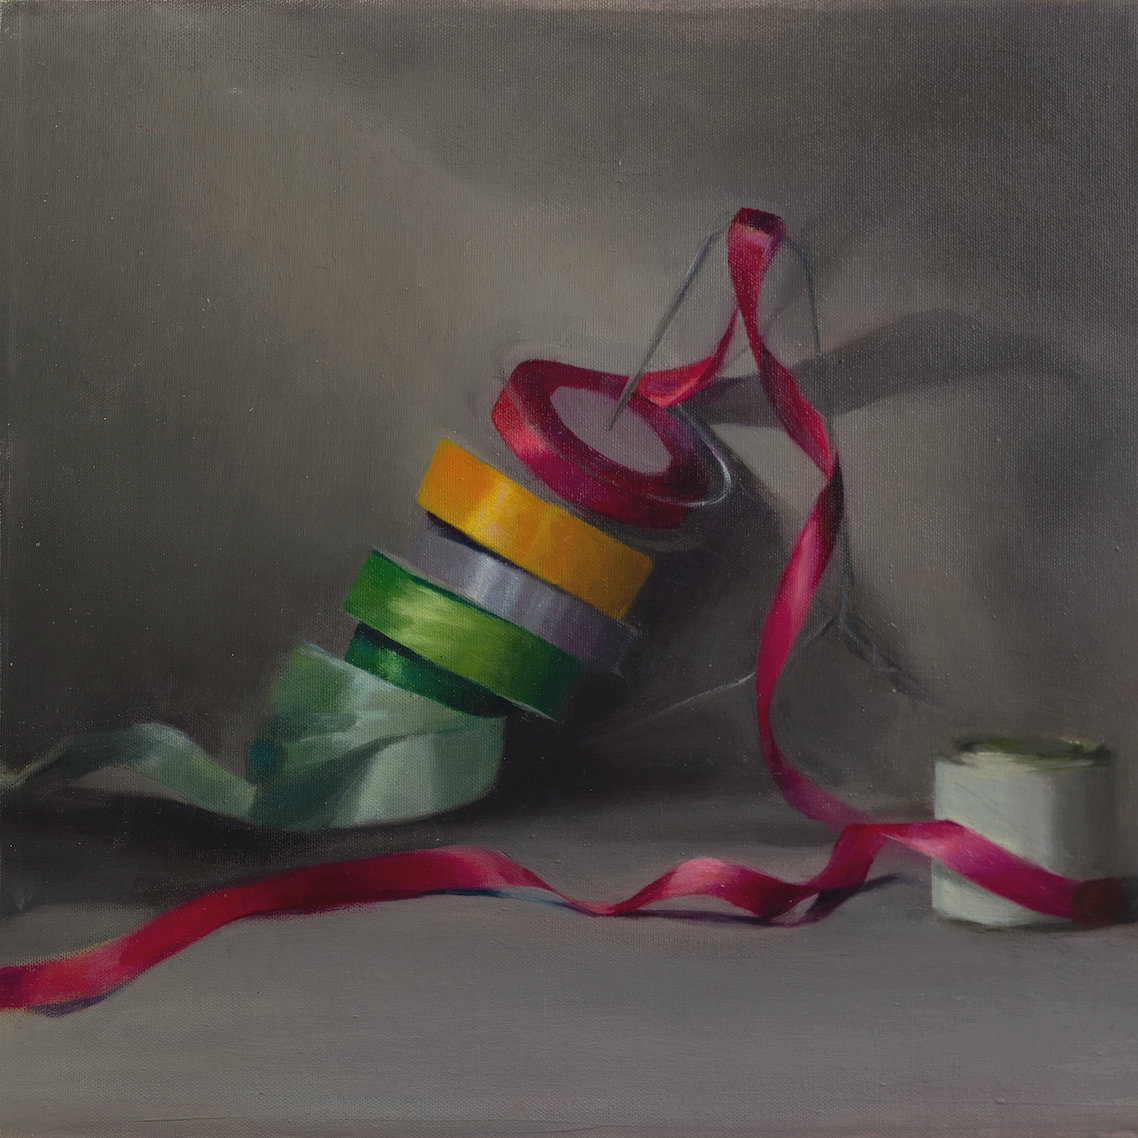 Hanging by a Ribbon, Giclee Print